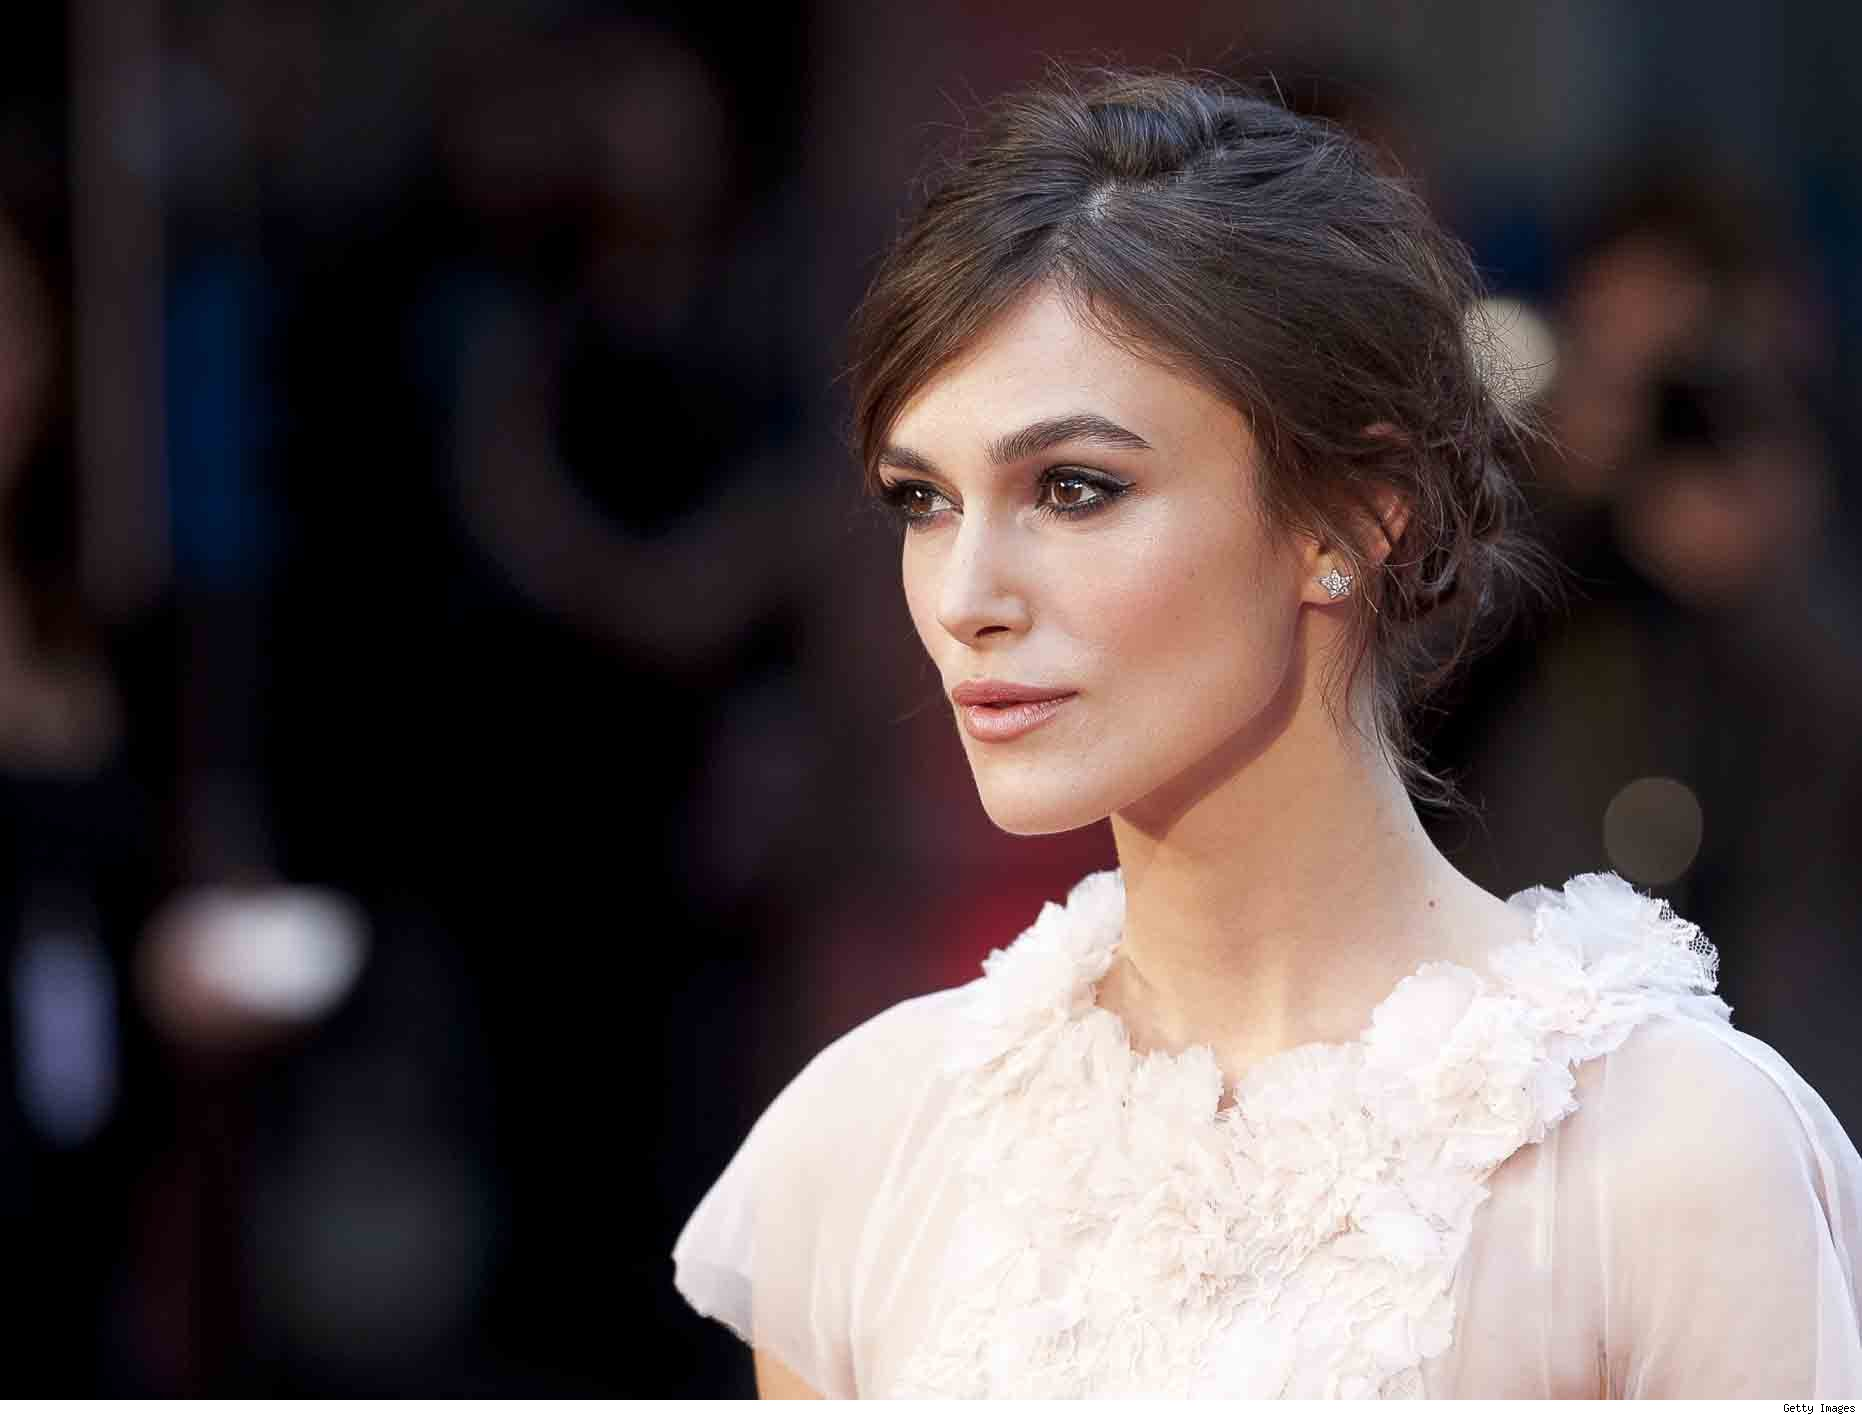 Top 9 at 9: JT in a Suit and Tie, Keira Knightley Gets Hitched and More